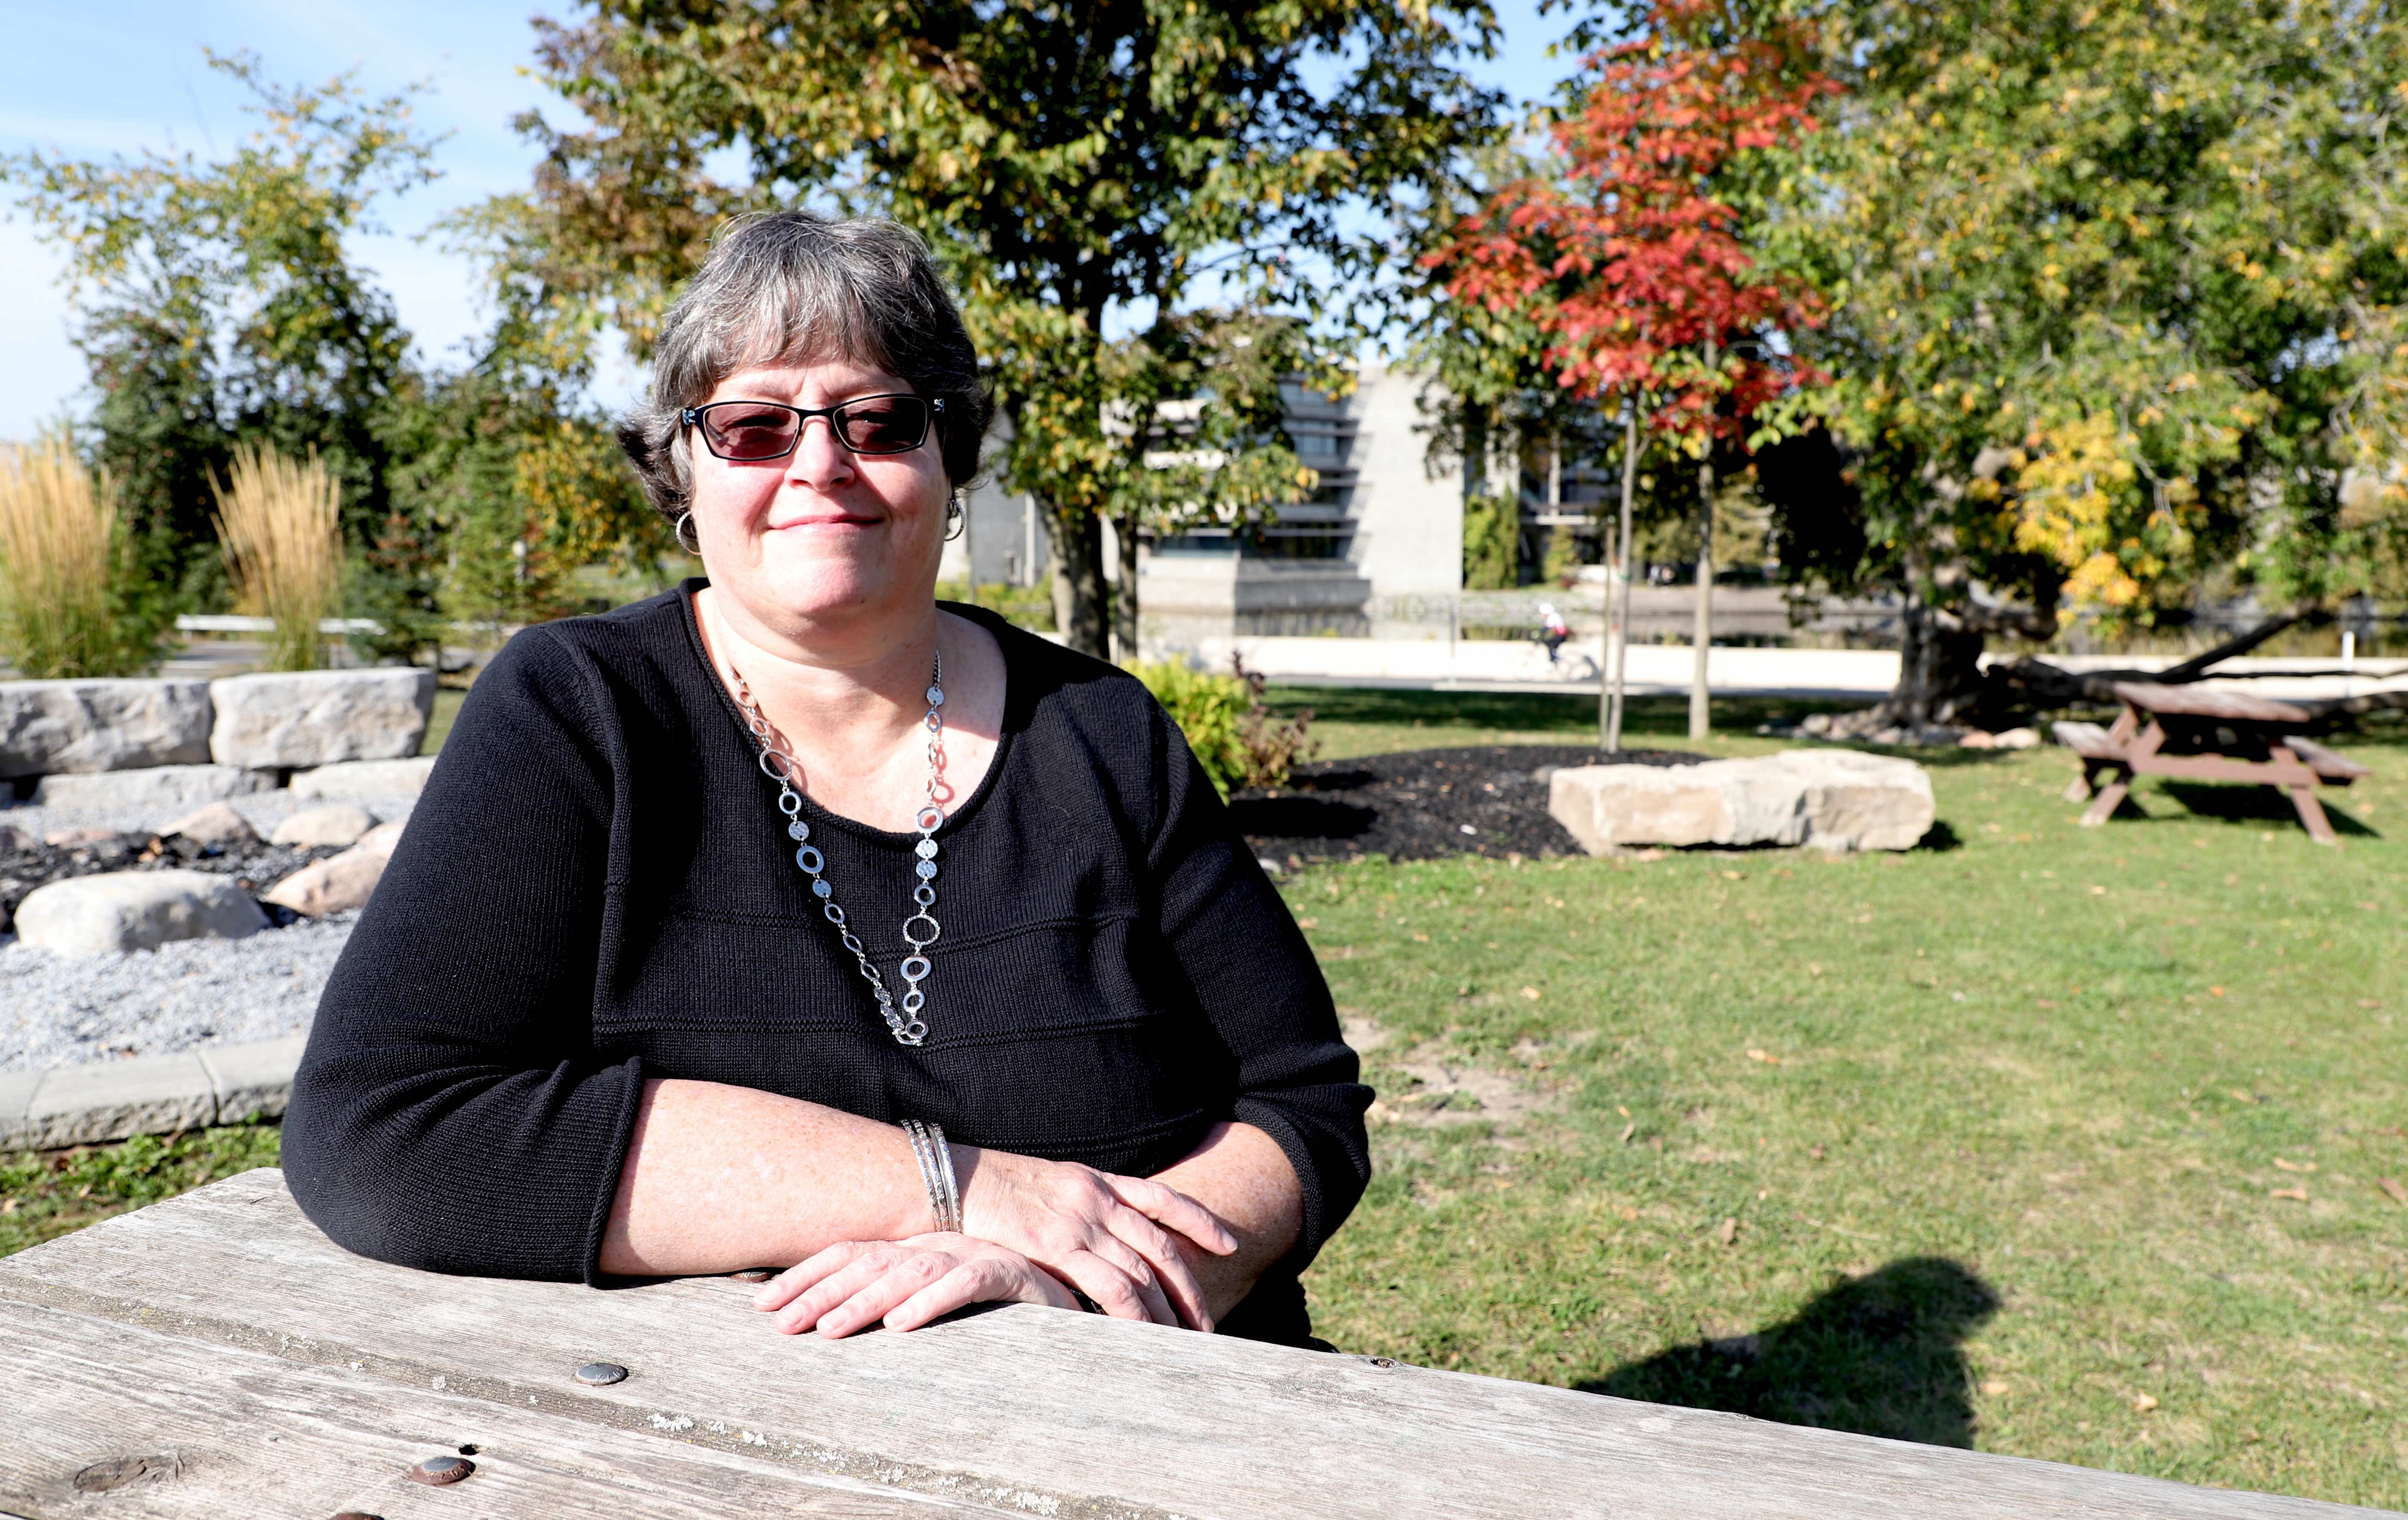 Deb Earle sitting at picnic table with Bata Library in the background and trees